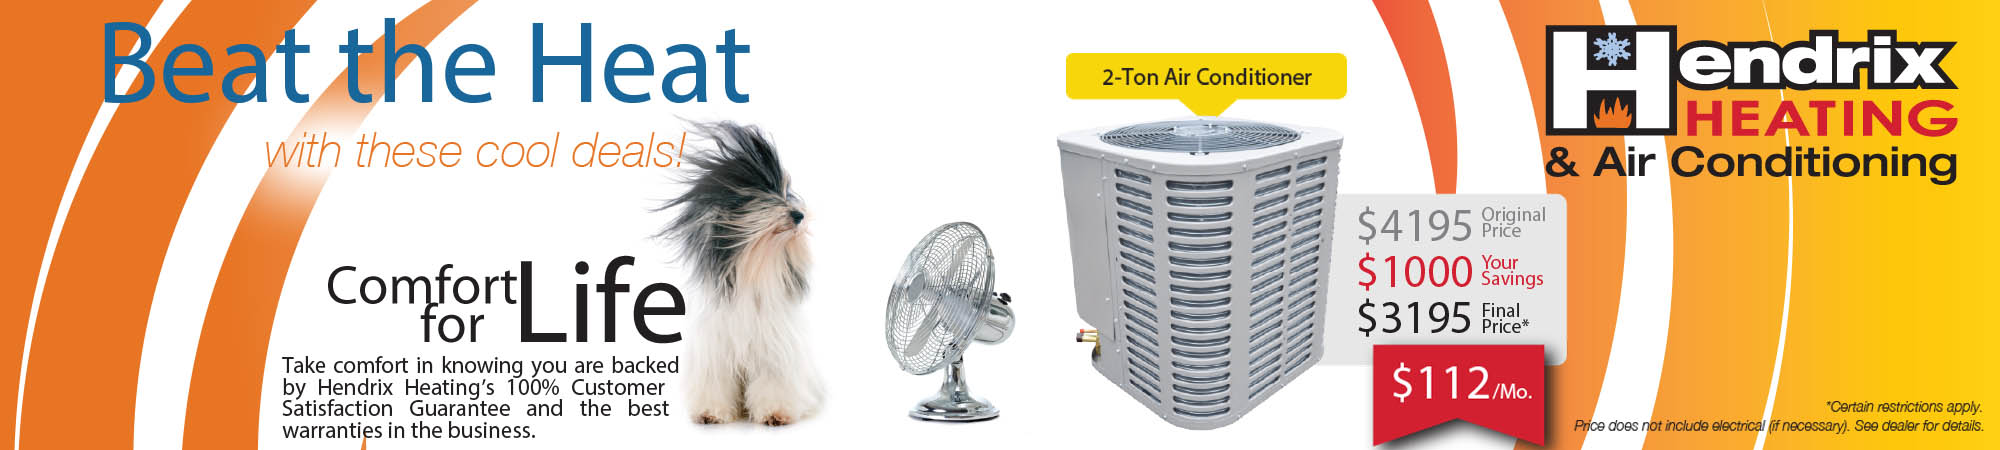 Hendrix Heating & Air Conditioning, ready to service your Air Conditioner in Albany OR